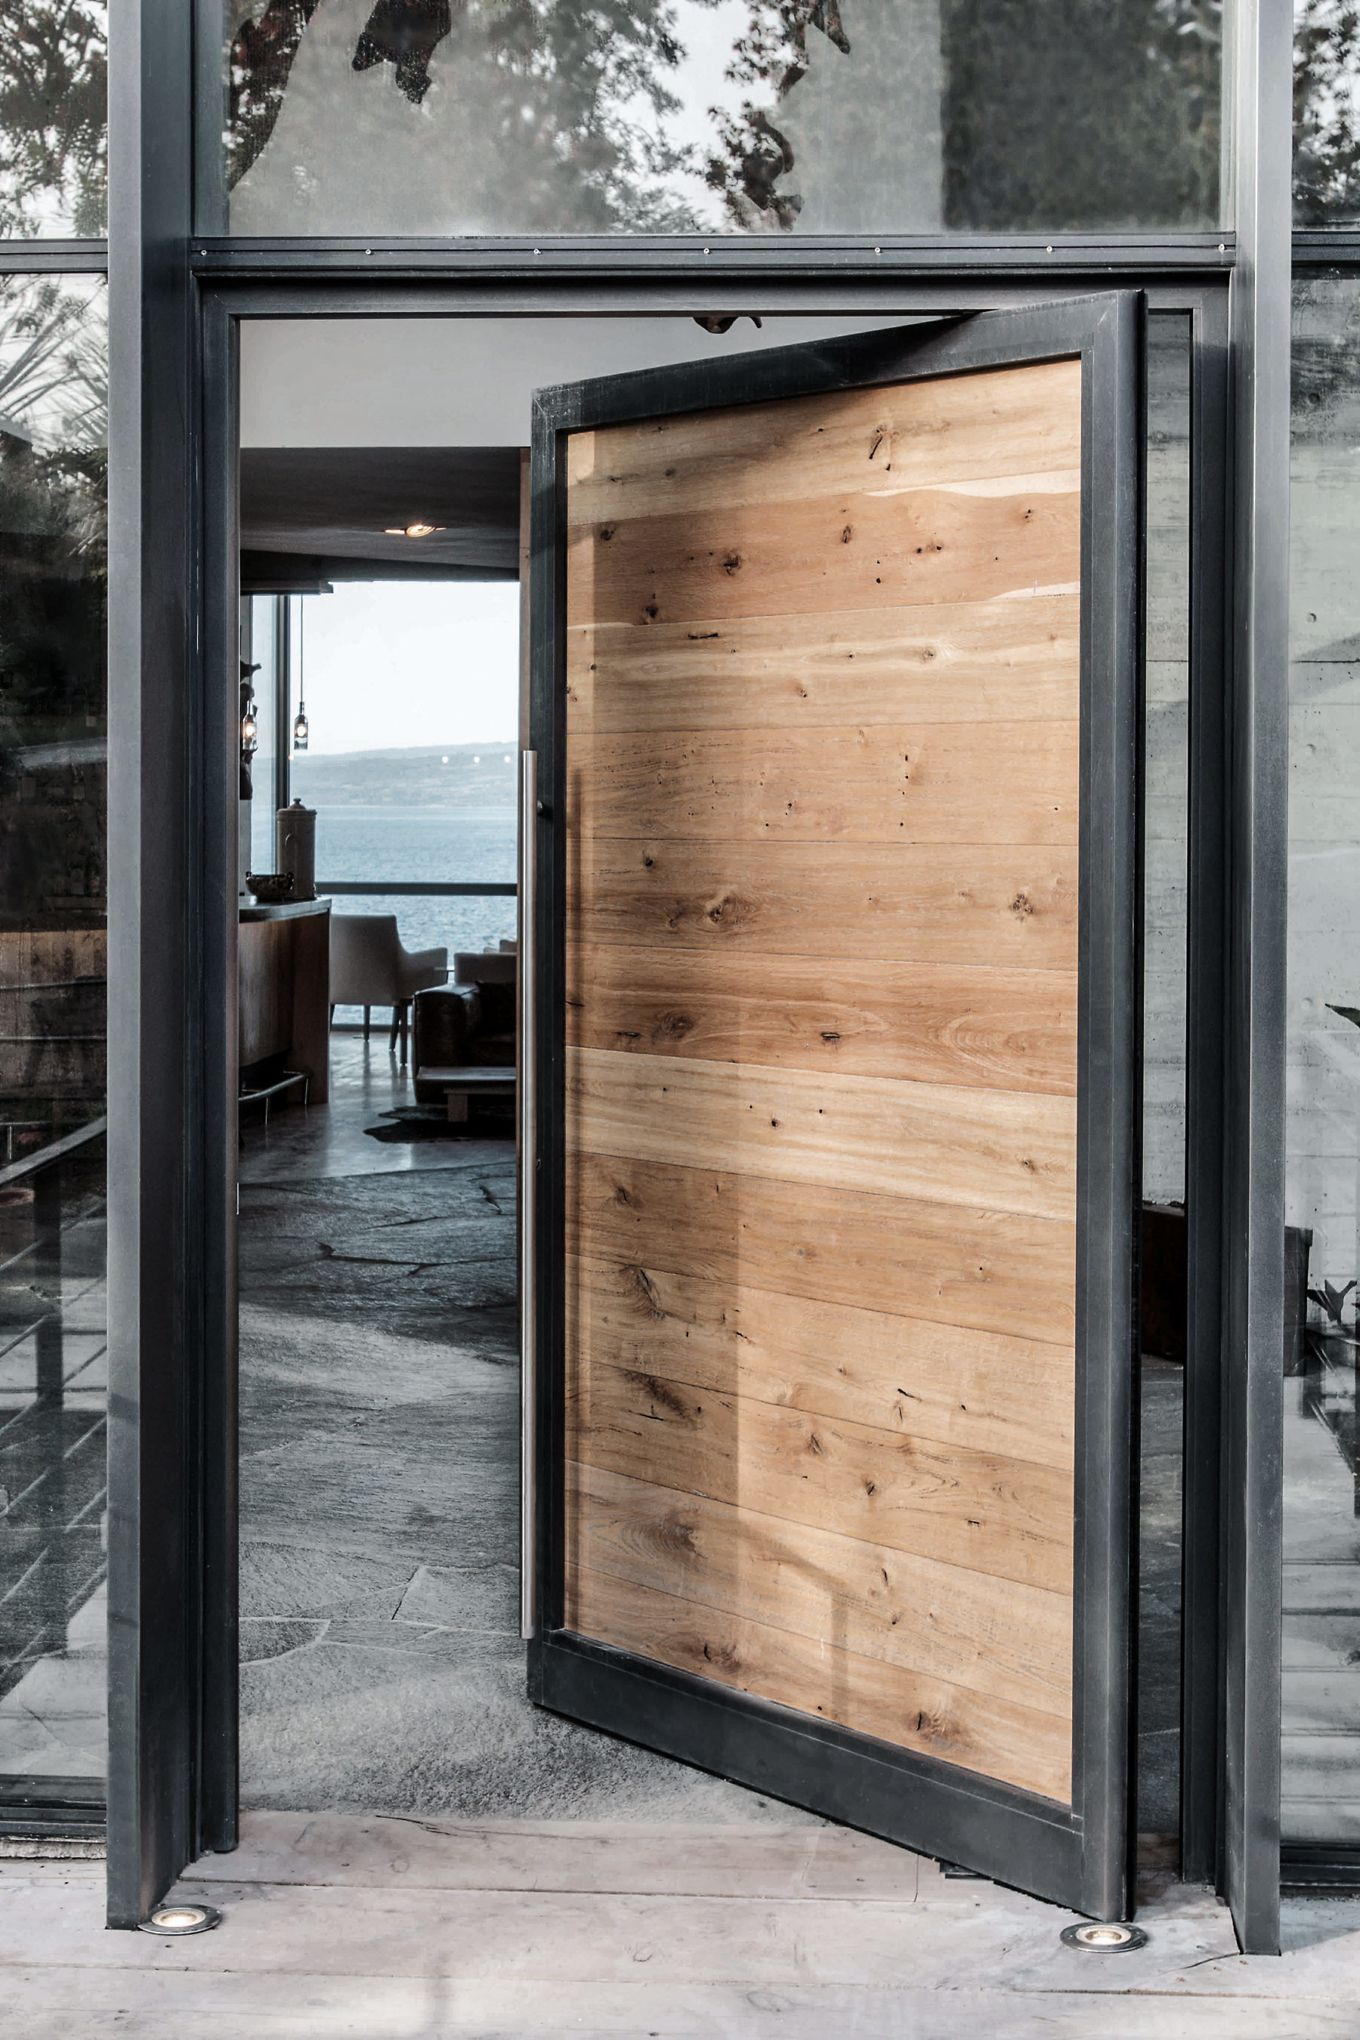 Image Result For Hotel Room Door Designs: Hotel Awa In Southern Chile